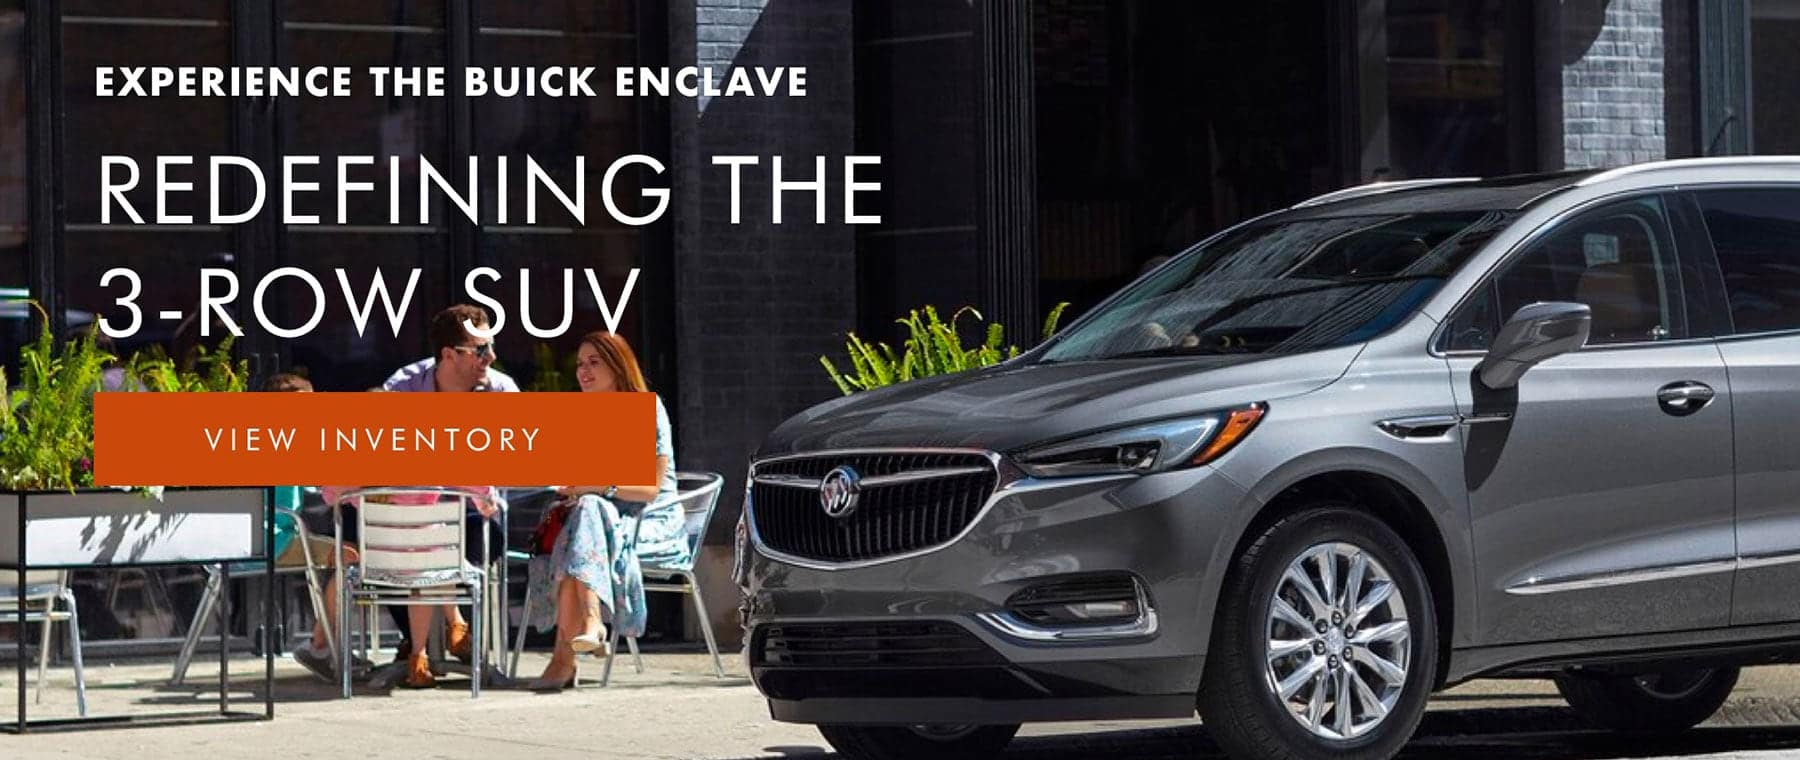 Experience the Buick Enclave: Redefining the 3 row SUV - View Inventory